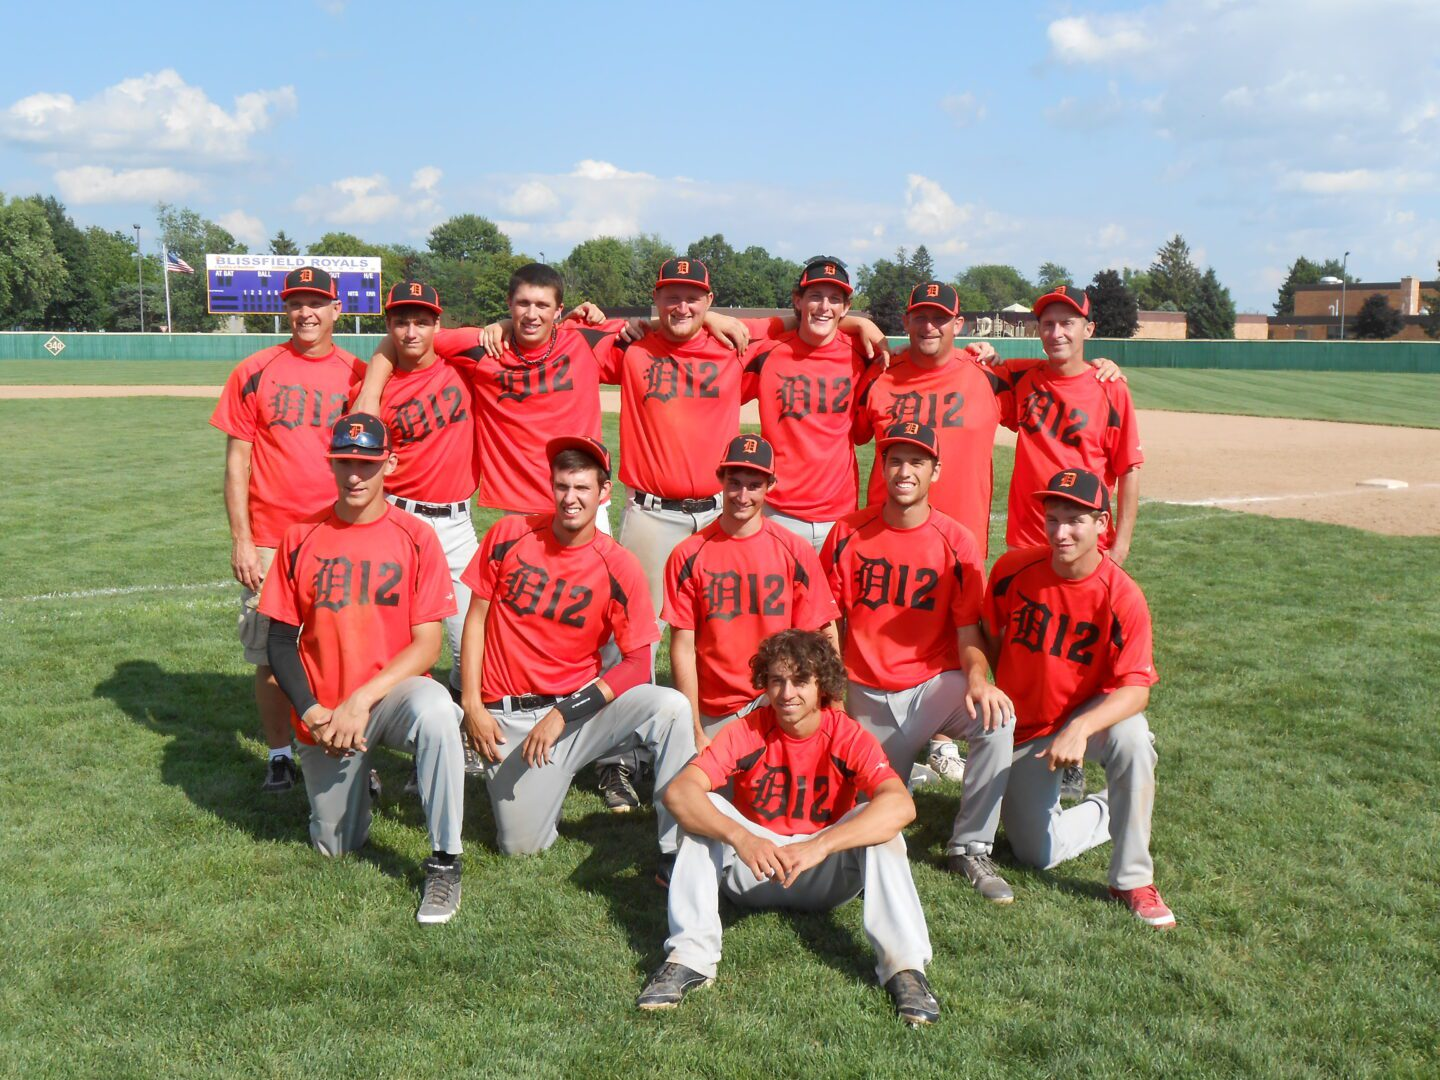 District 12 Big League baseball team over comes early loss in state tournament and makes it to finals